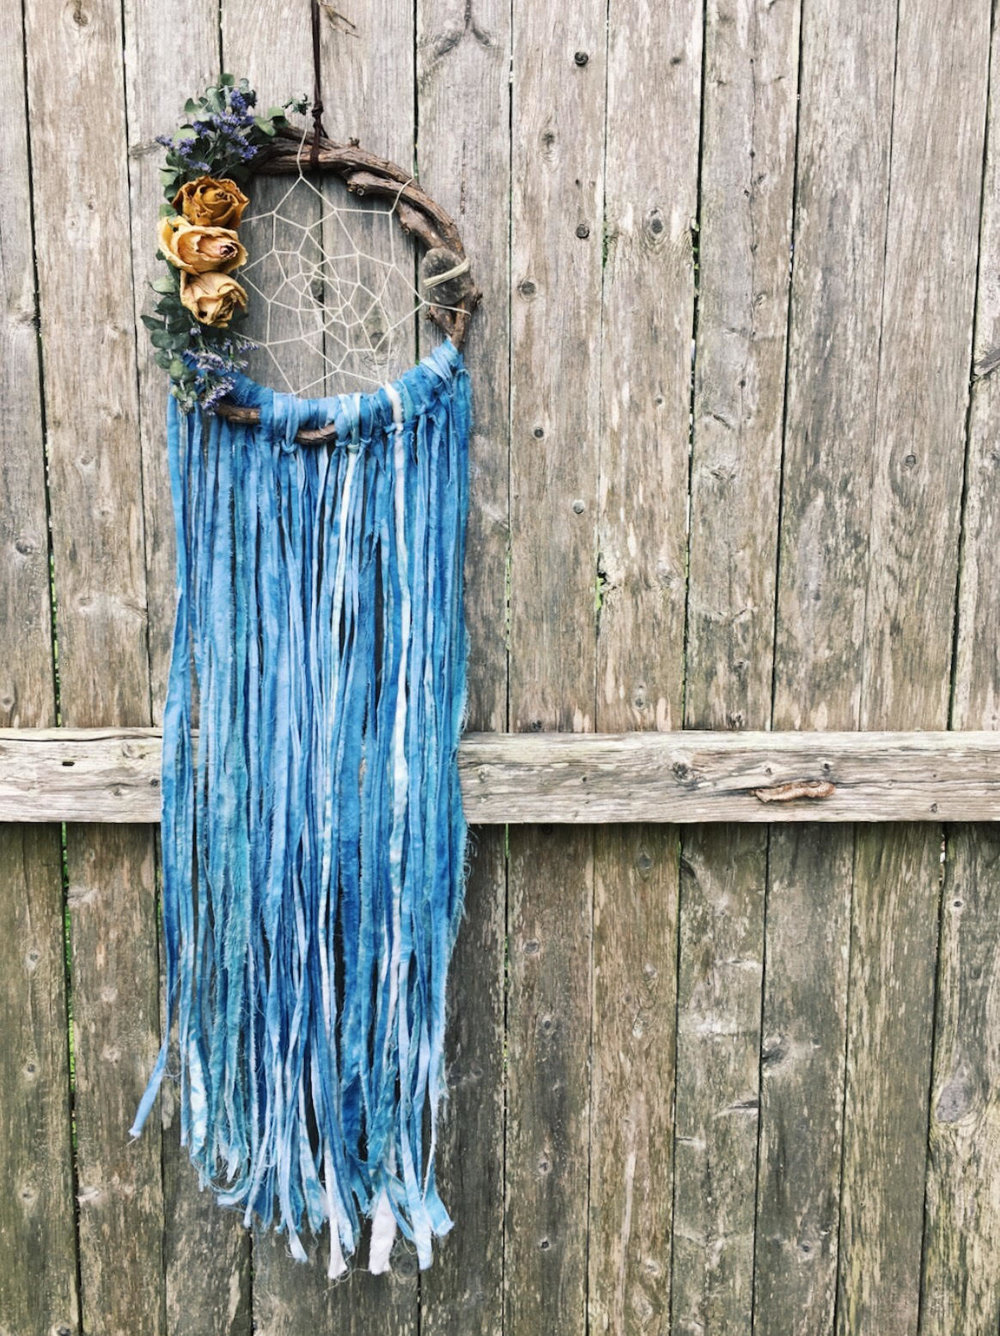 I See Clearly, Indigo + Botanical Dreamcatcher